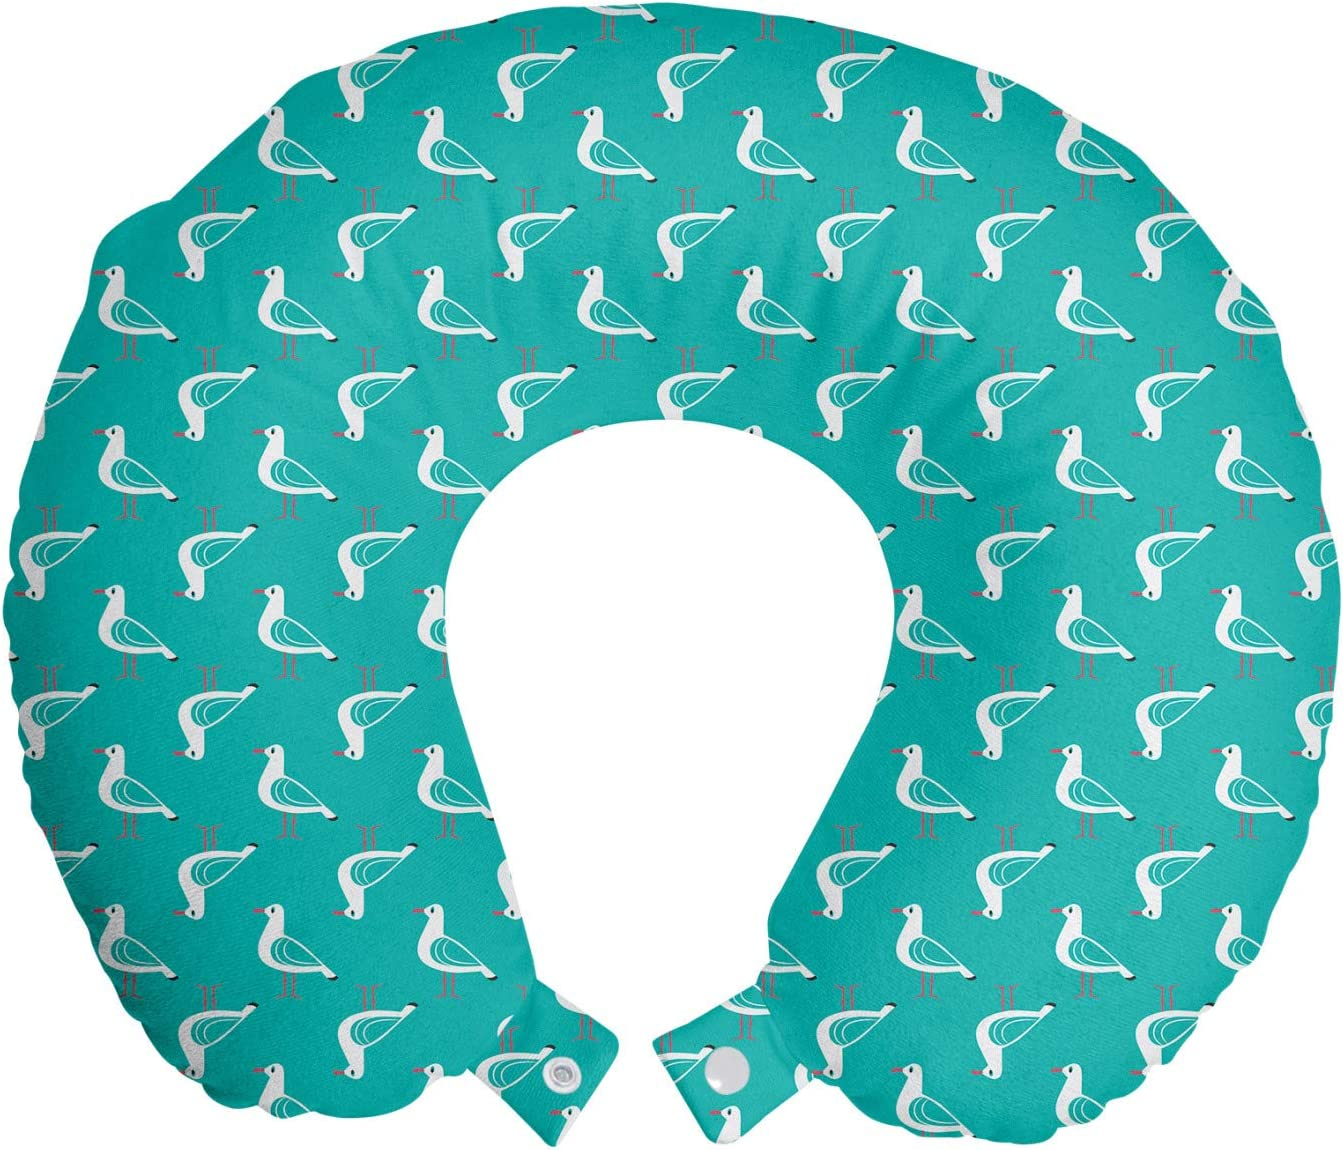 Amazon Com Ambesonne Birds Travel Pillow Neck Rest Maritime Themed Print Of Seagulls Nautical Creatures Oceanic Sea Summer Memory Foam Traveling Accessory For Airplane And Car 12 Dark Seafoam And White Home